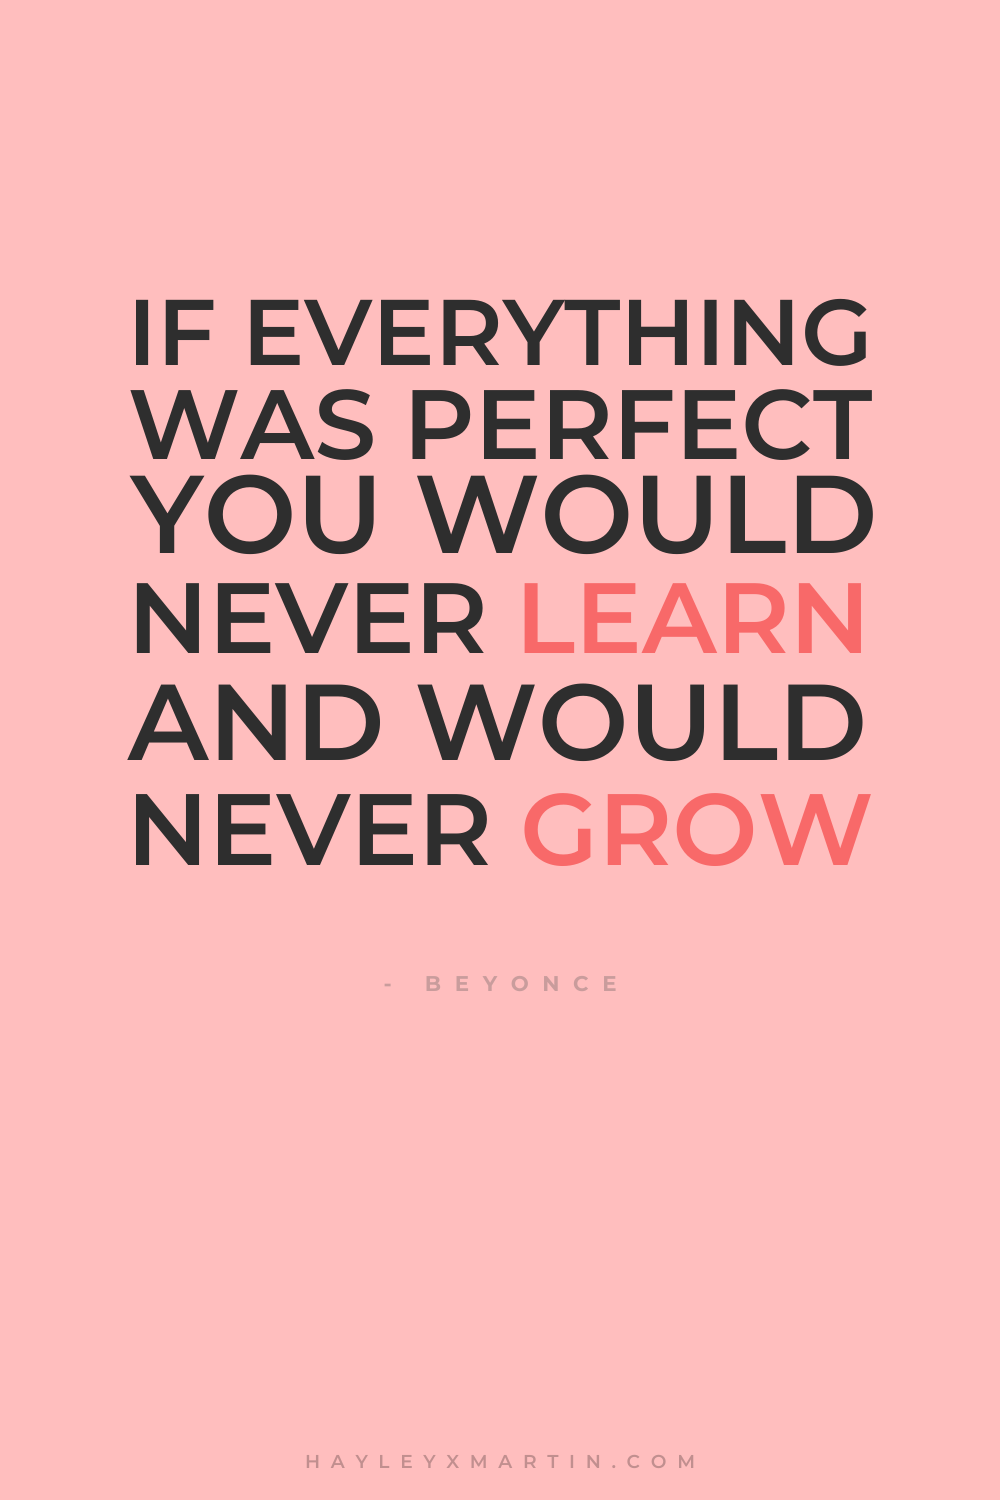 IF EVERYTHING WAS PERFECT YOU WOULD NEVER LEARN AND WOULD NEVER GROW | INSPIRATIONAL QUOTE | BEYONCE